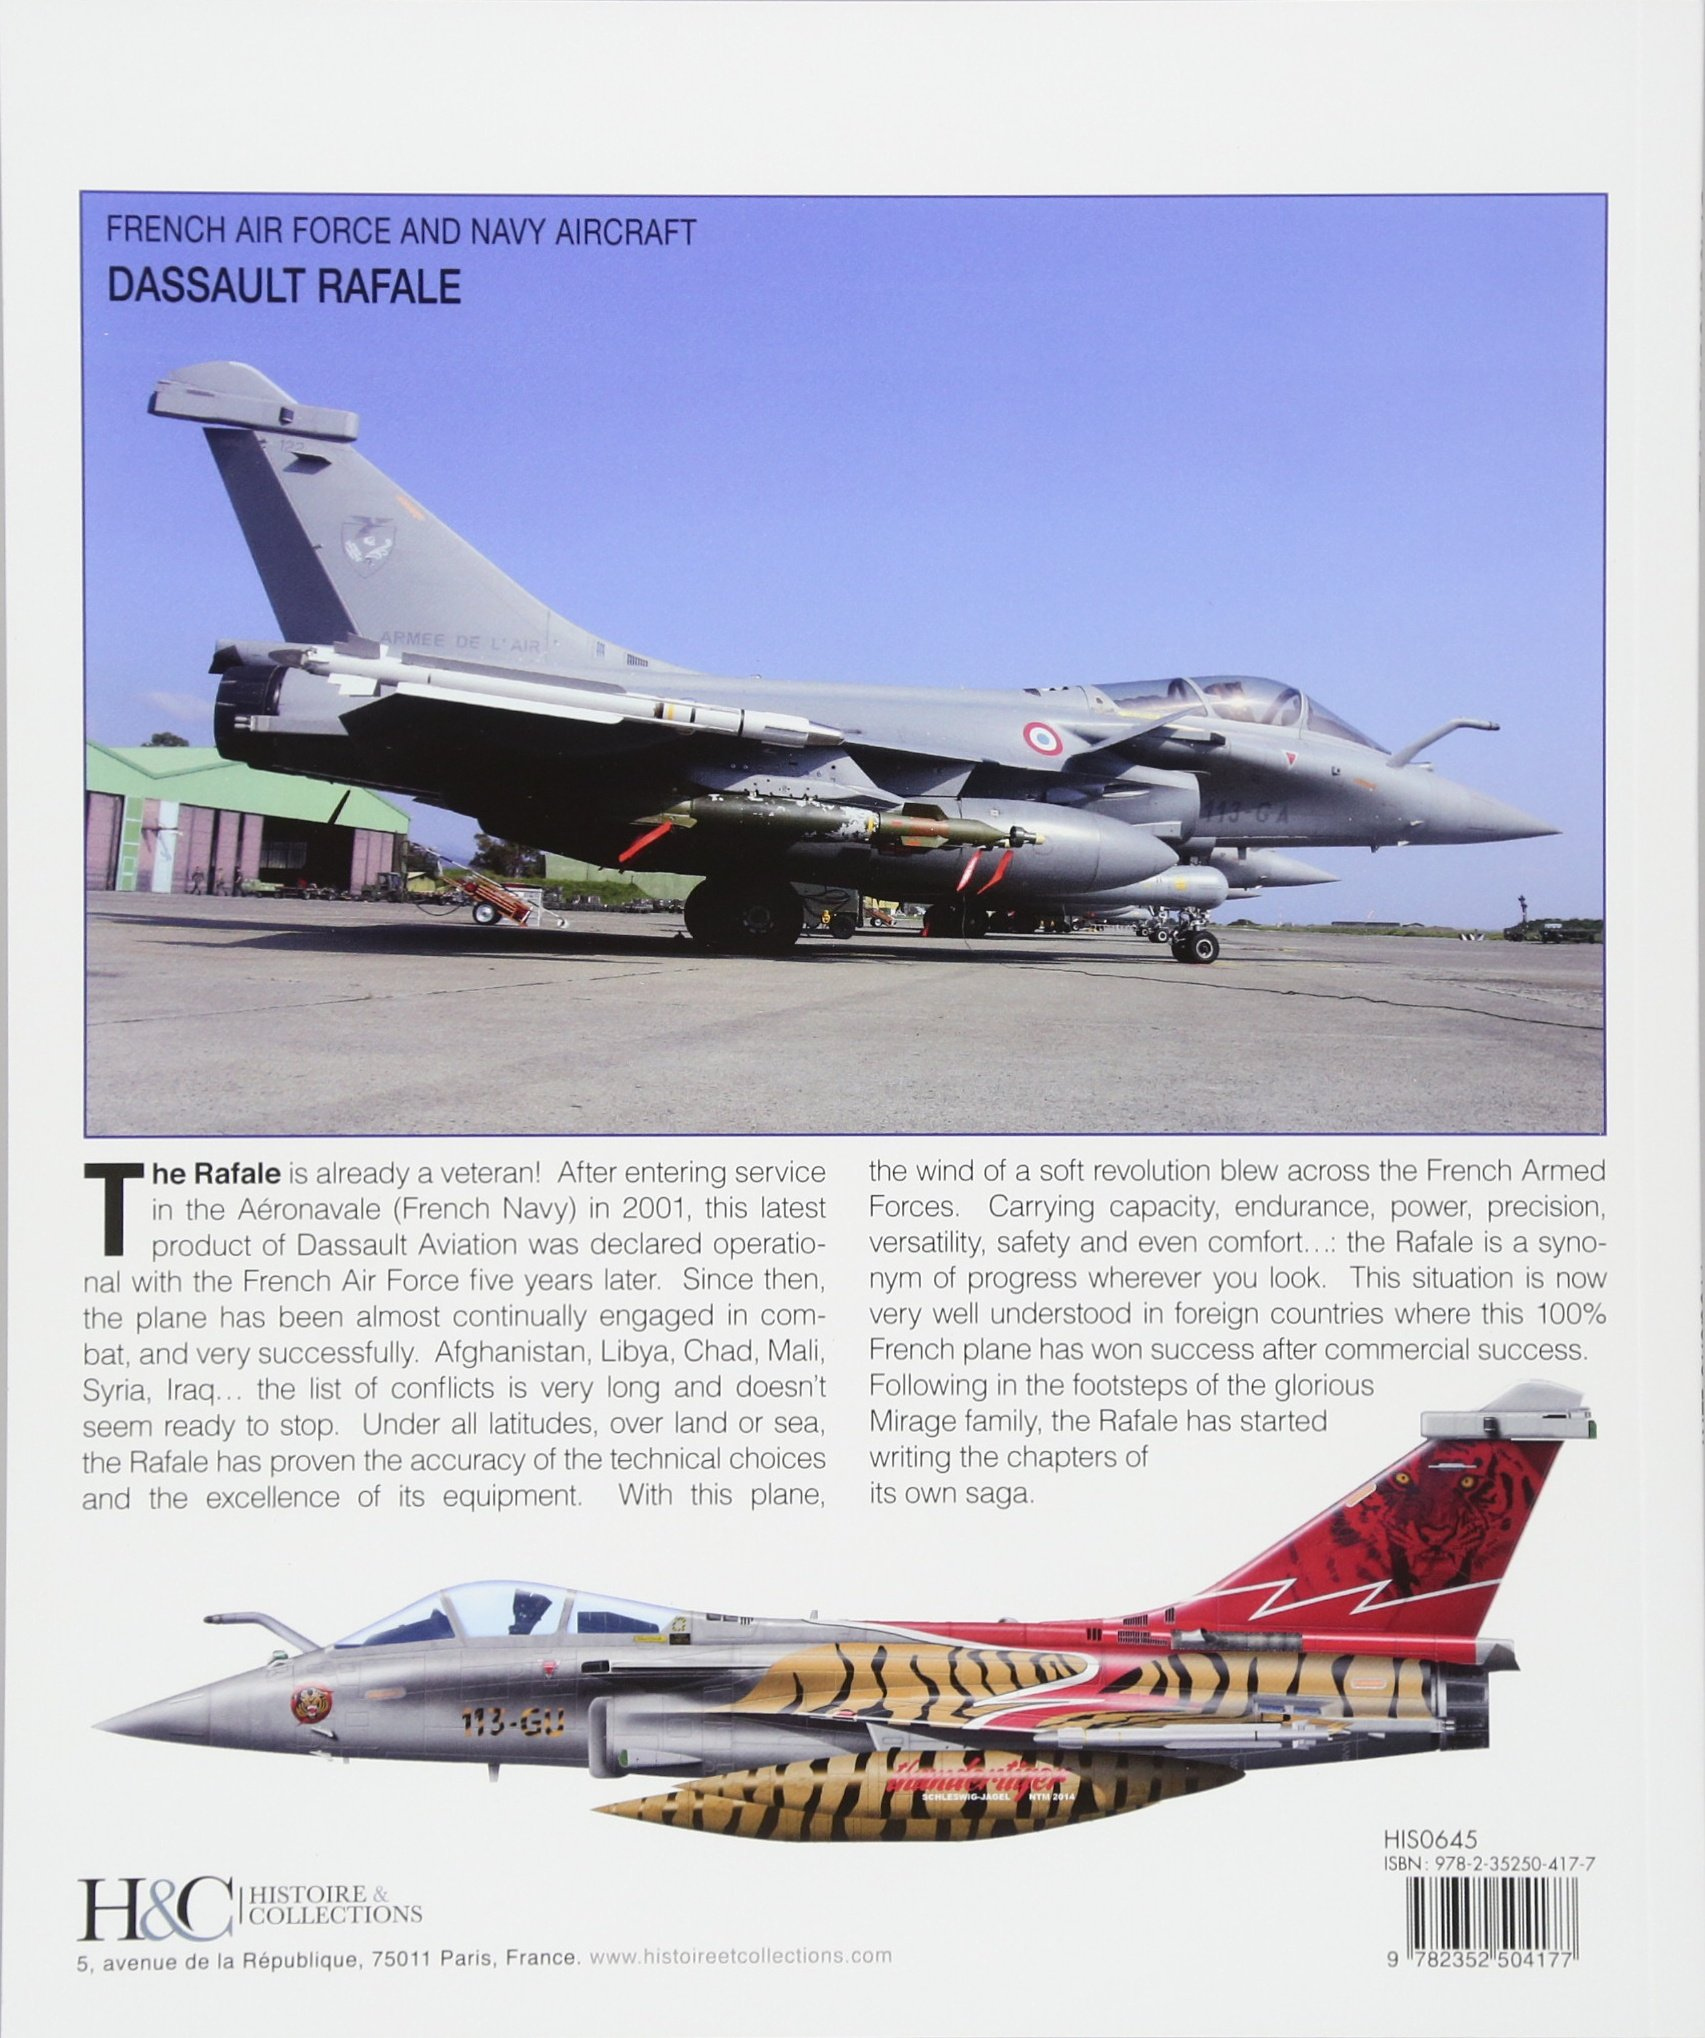 Dassault Rafale (French Air Force and Navy Aircraft